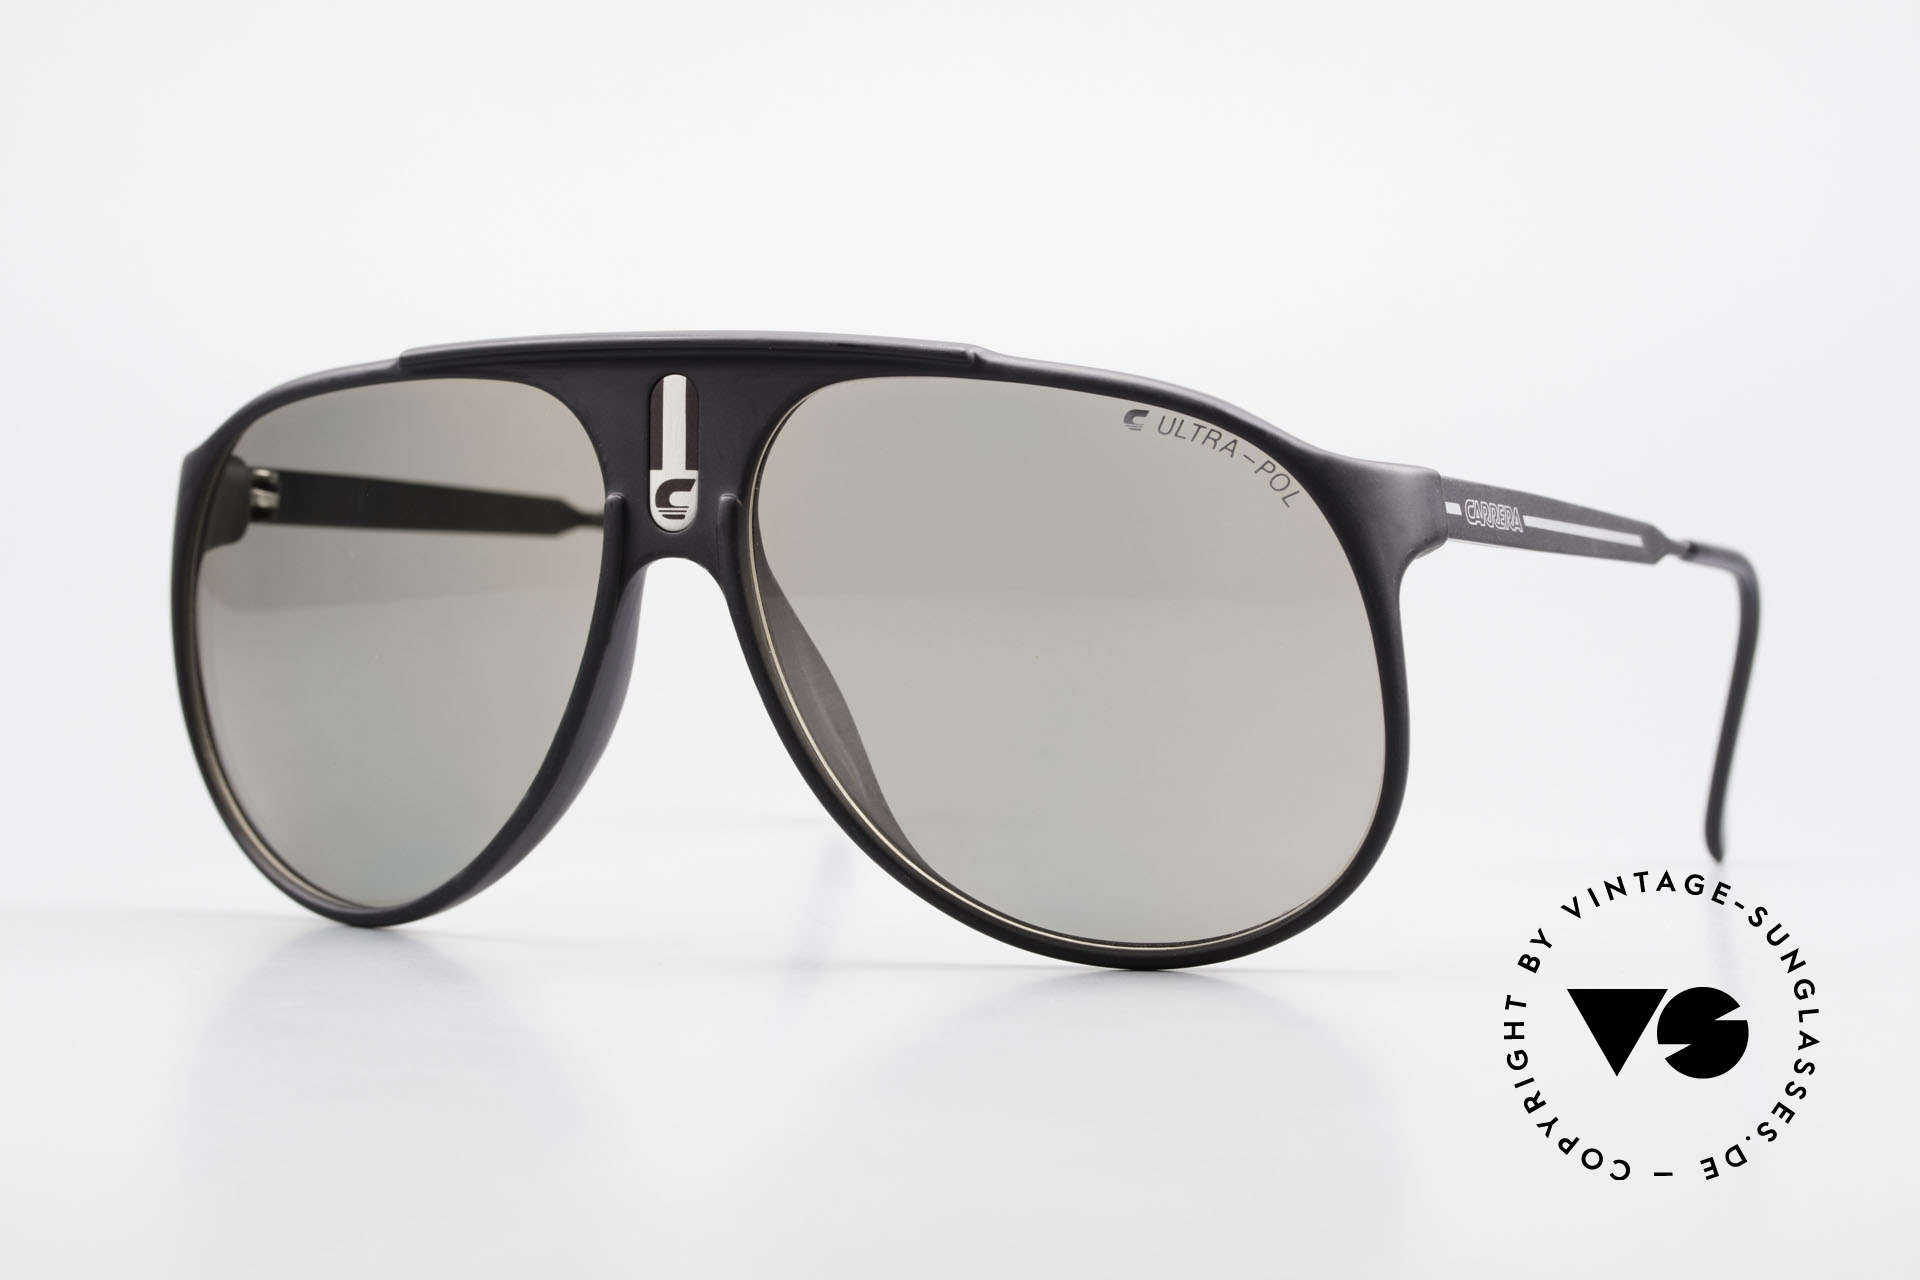 Carrera 5424 Sunglasses Polarized Lens 80's, old 80's sports sunglasses by Carrera; true vintage, Made for Men